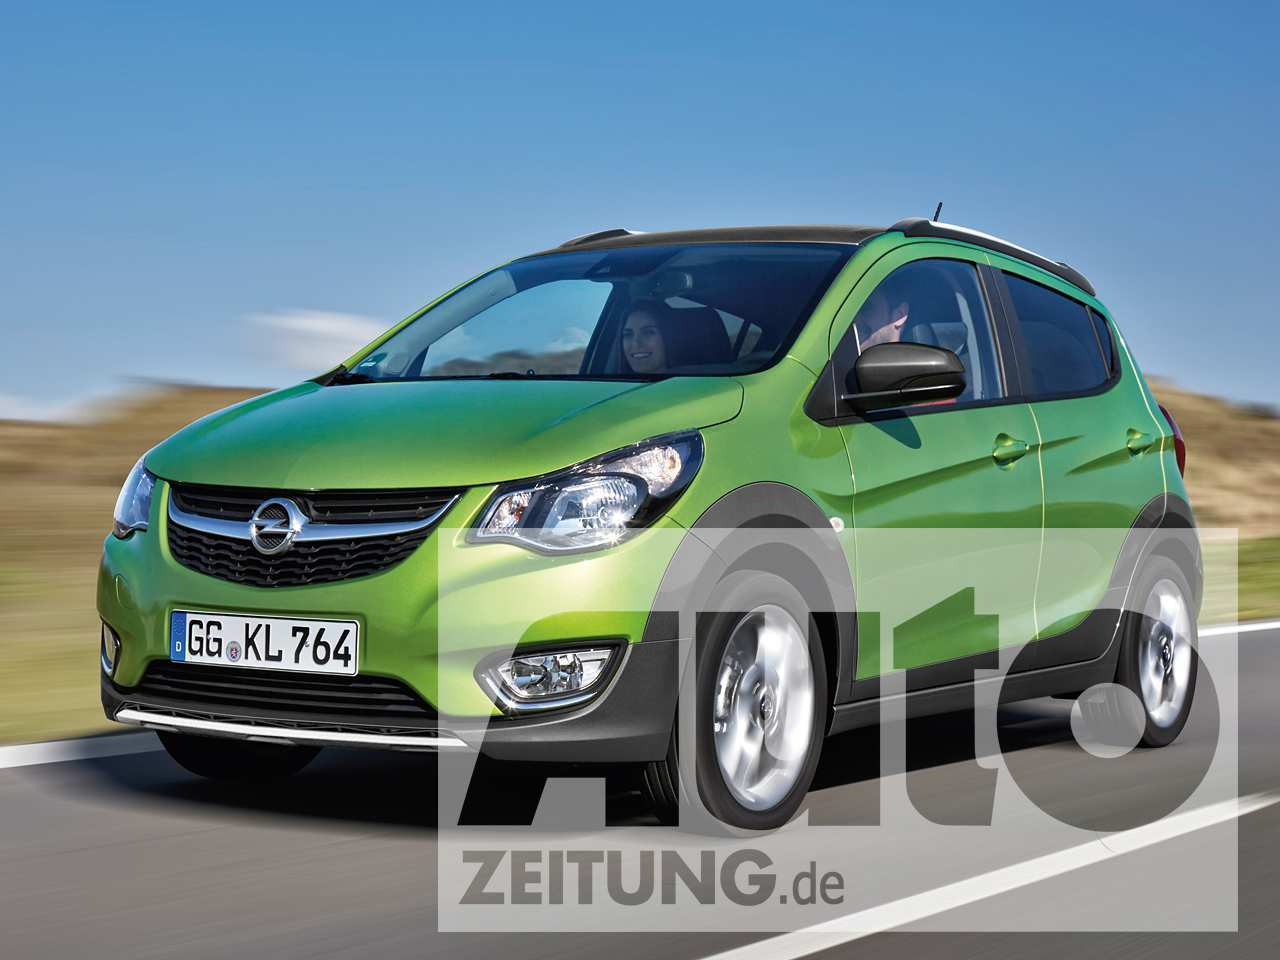 75 All New Opel Plane 2019 Price Design And Review